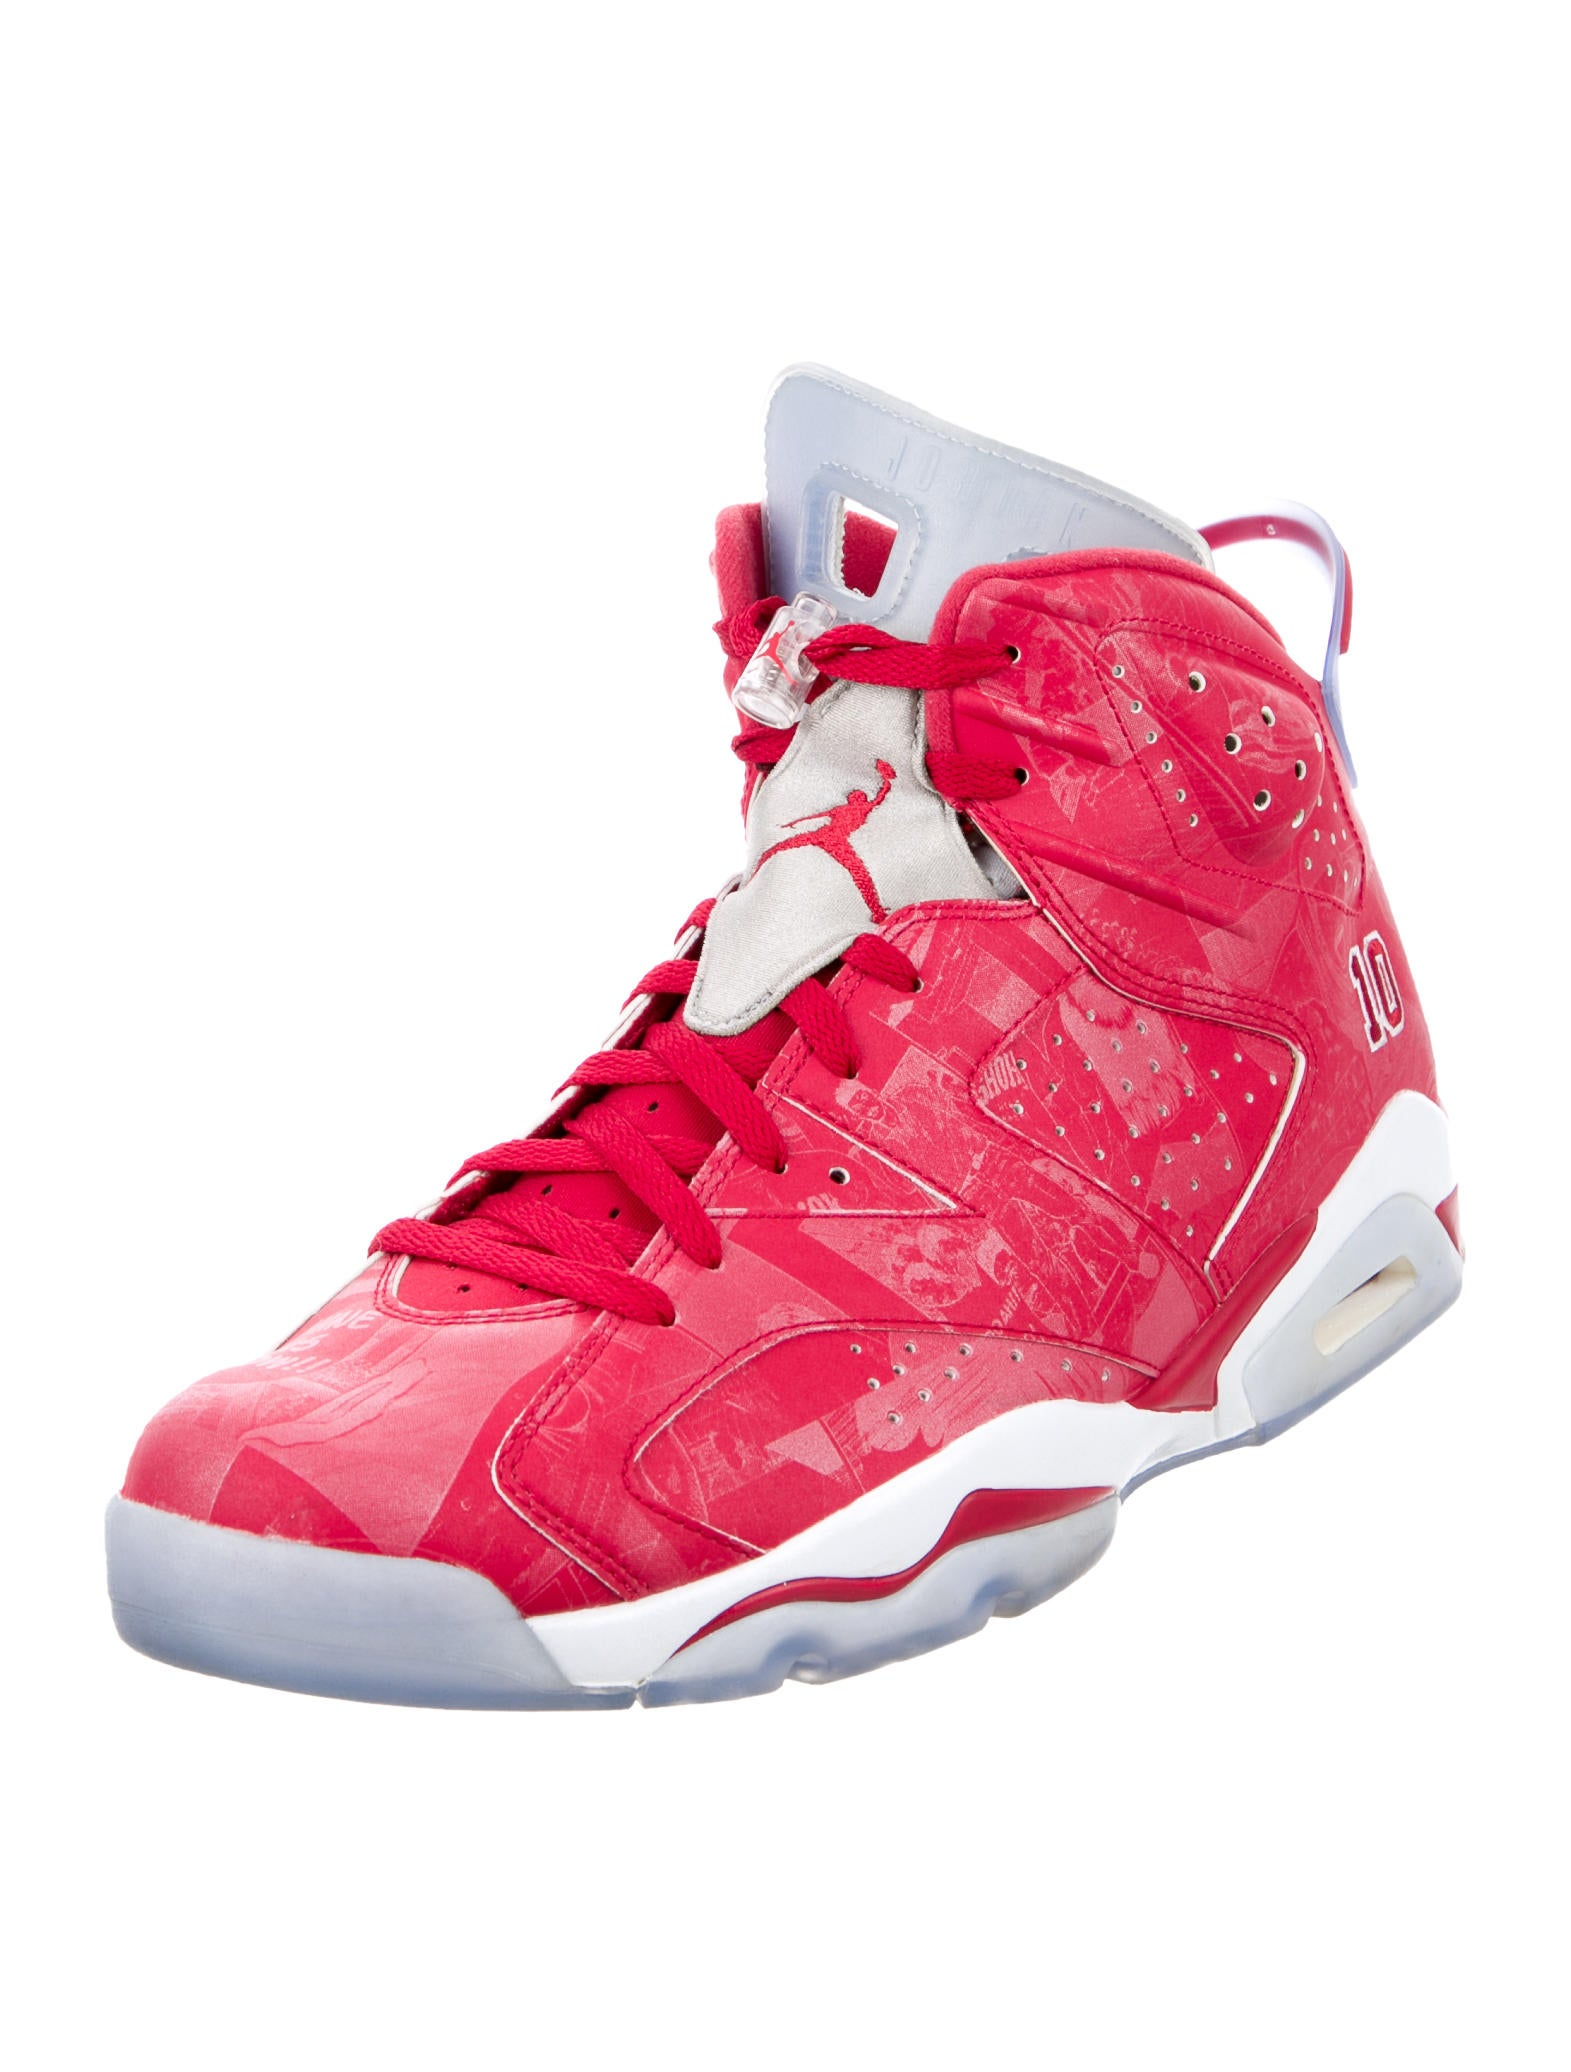 low priced 05d95 af246 offer neu rot schuhe air jordan 11 gs carmelo anthony pe im